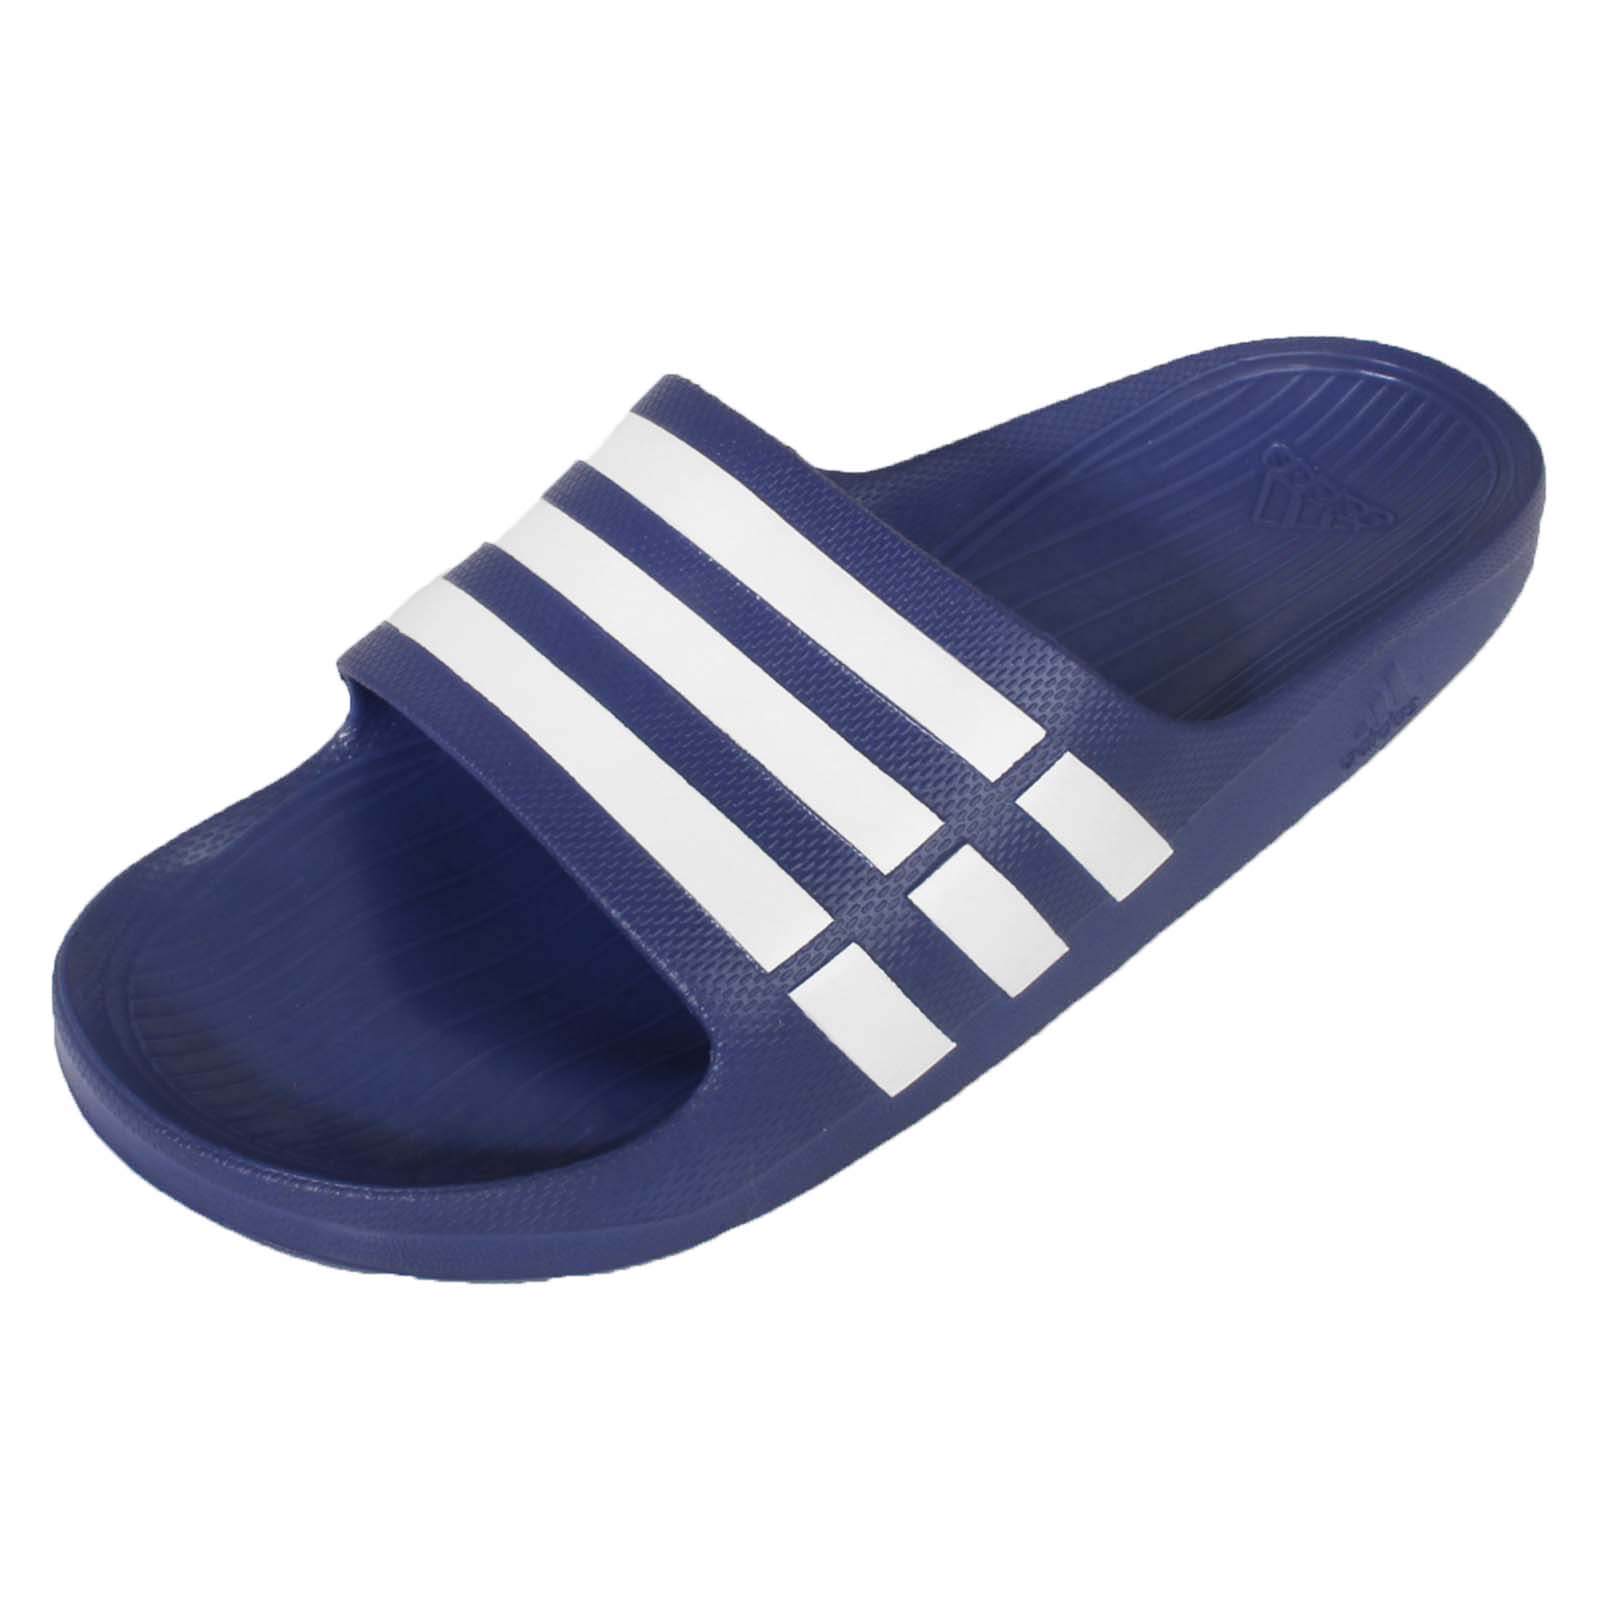 953908761b3ce3 adidas Duramo Slide Navy Blue White Classic Mens Sports Slippers Sandals  G14309